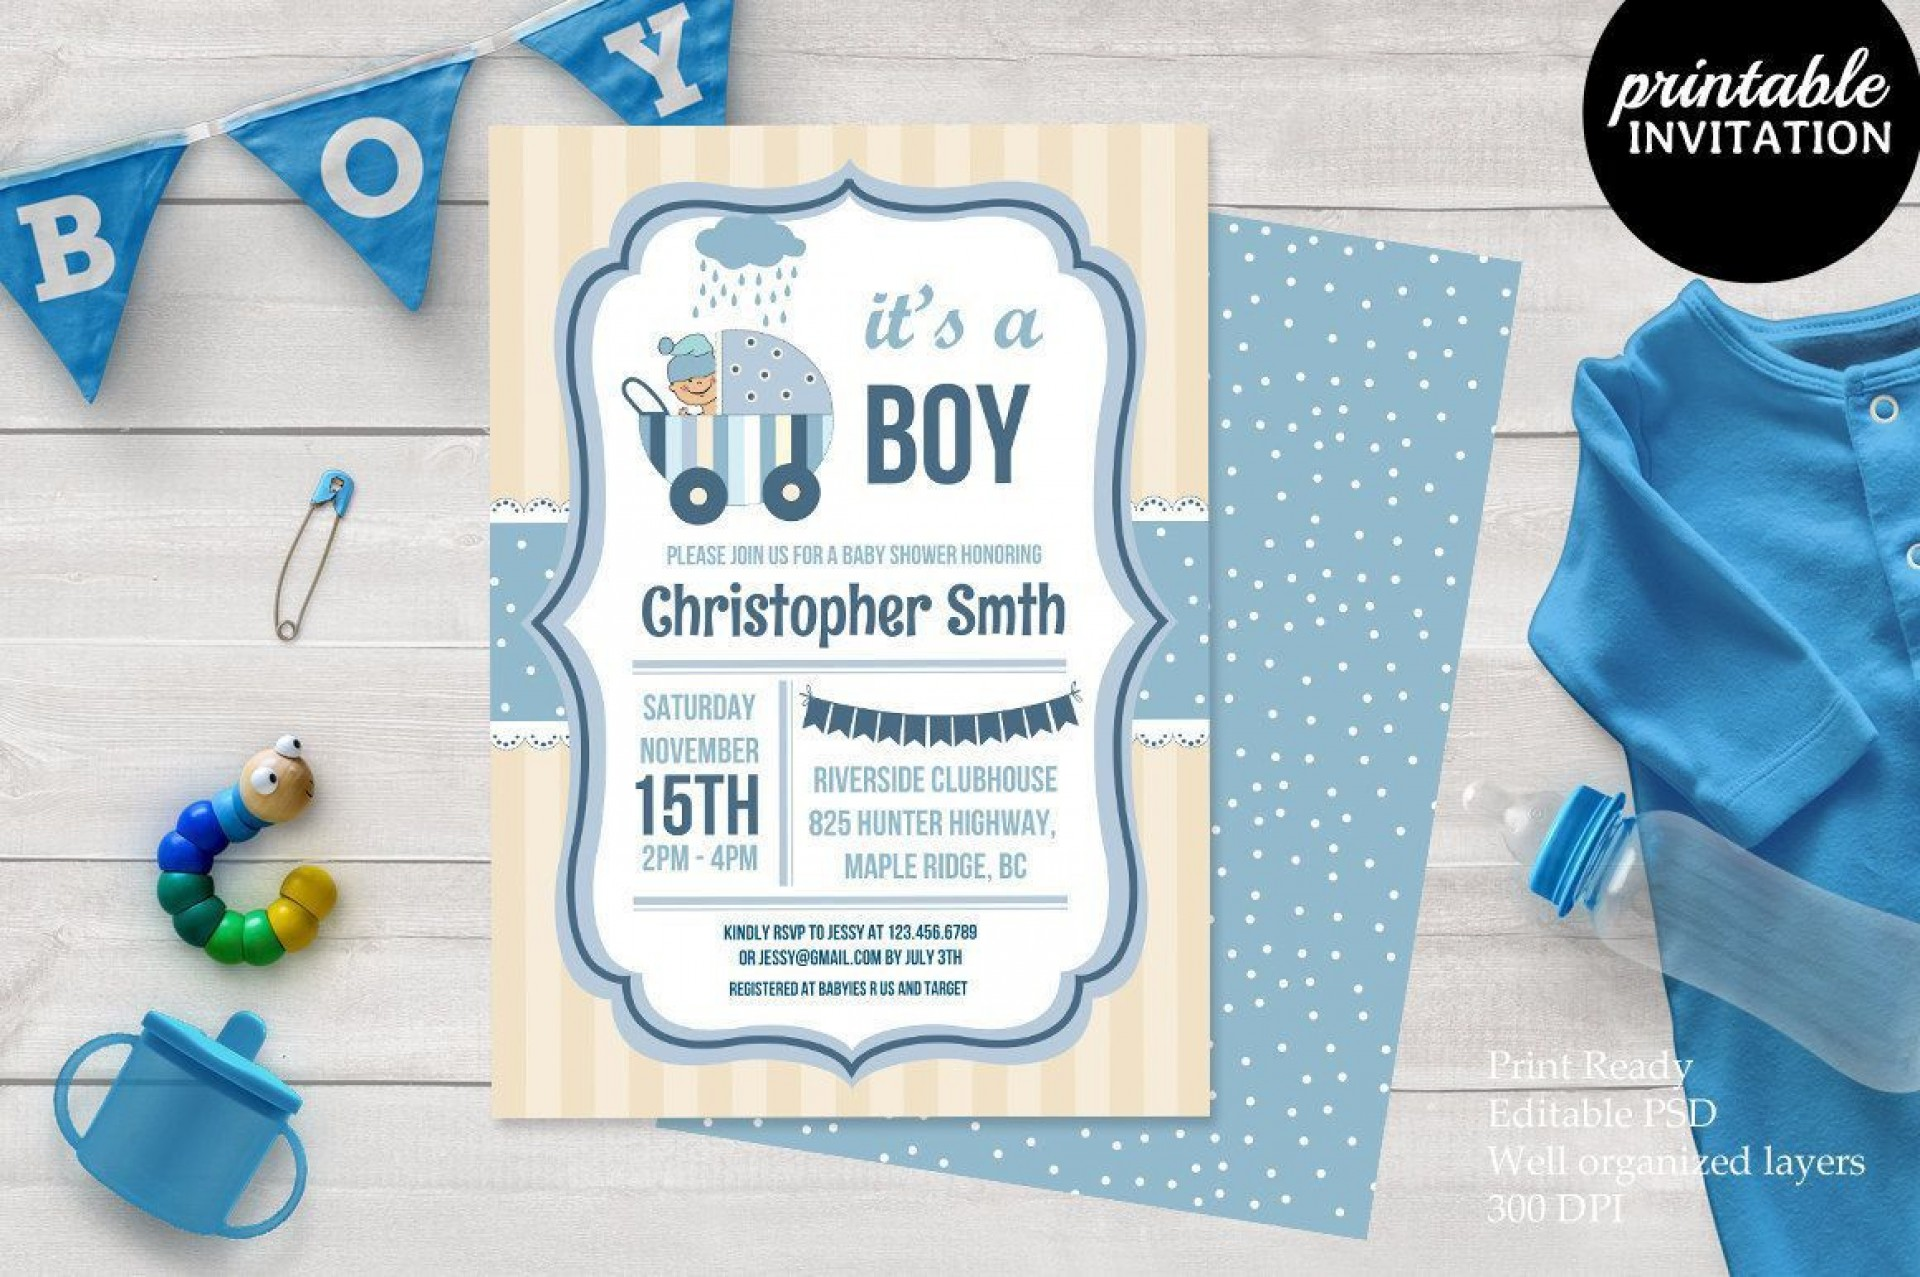 001 Sensational Baby Shower Card Template Psd High Definition 1920